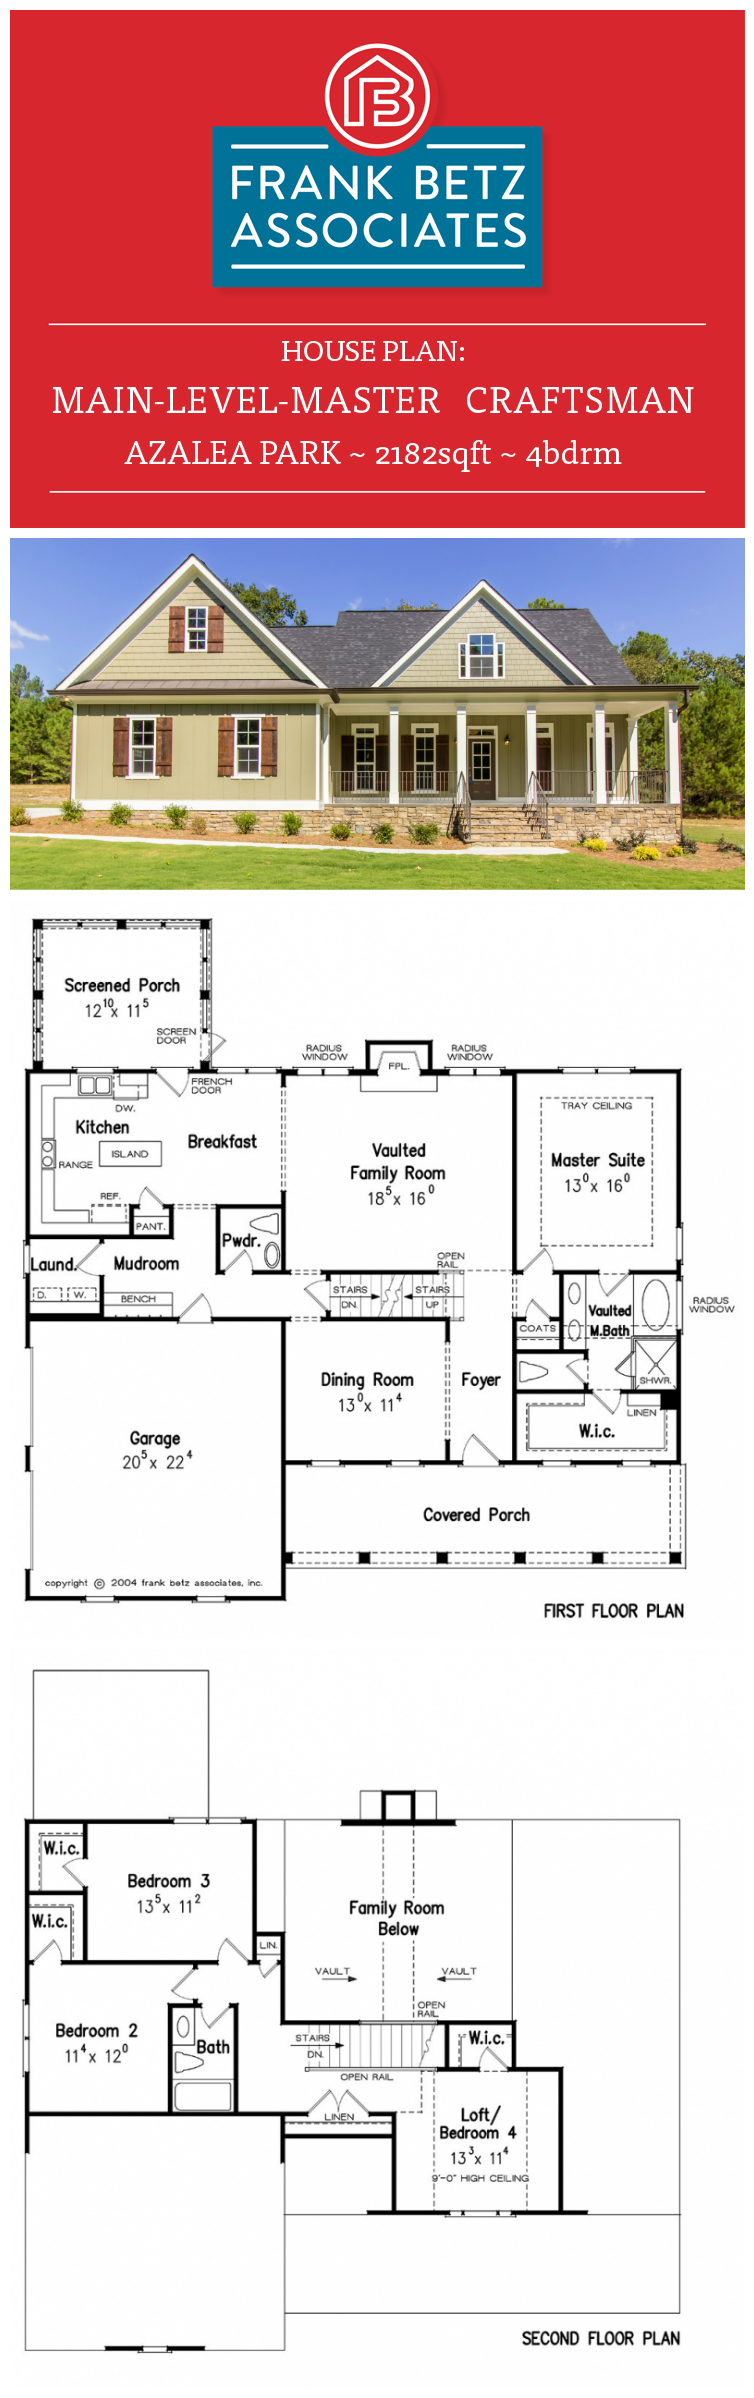 Azalea park 2182sqft 4brm main level master craftsman for Frank betz house plans